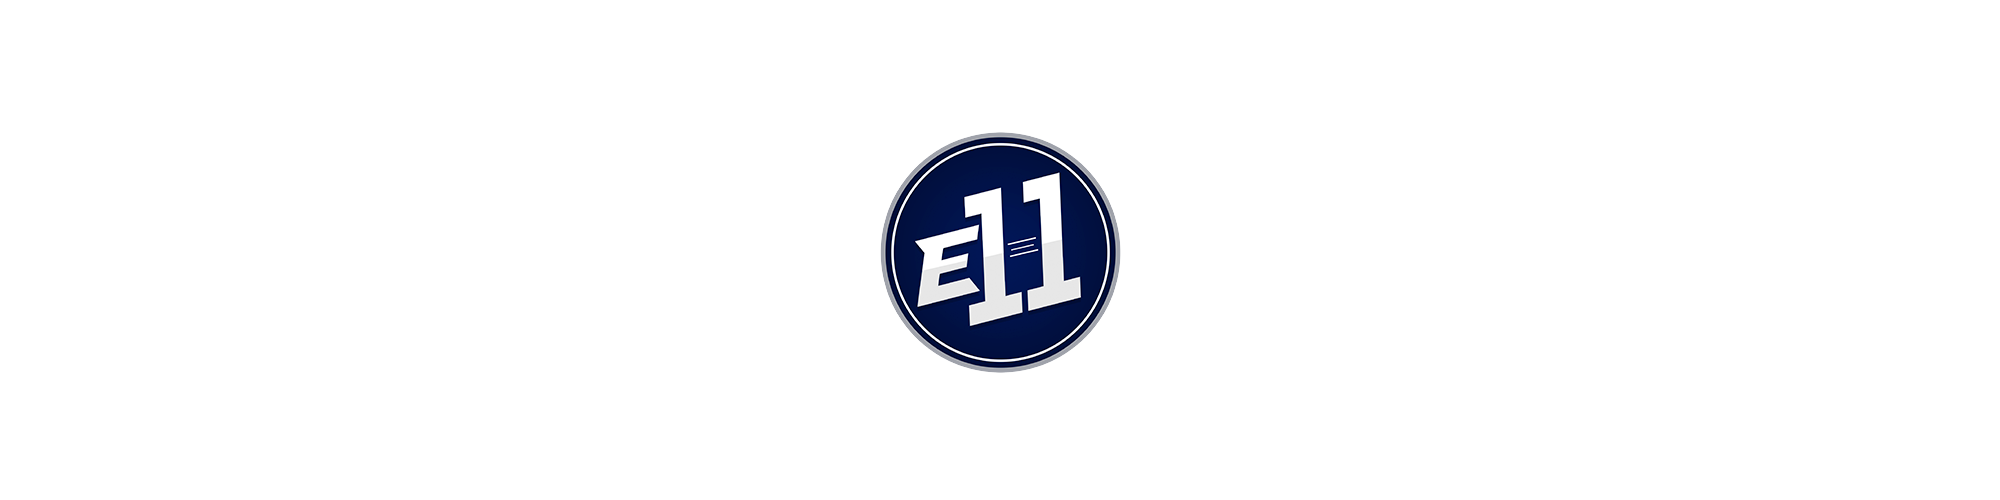 Eleven Gaming